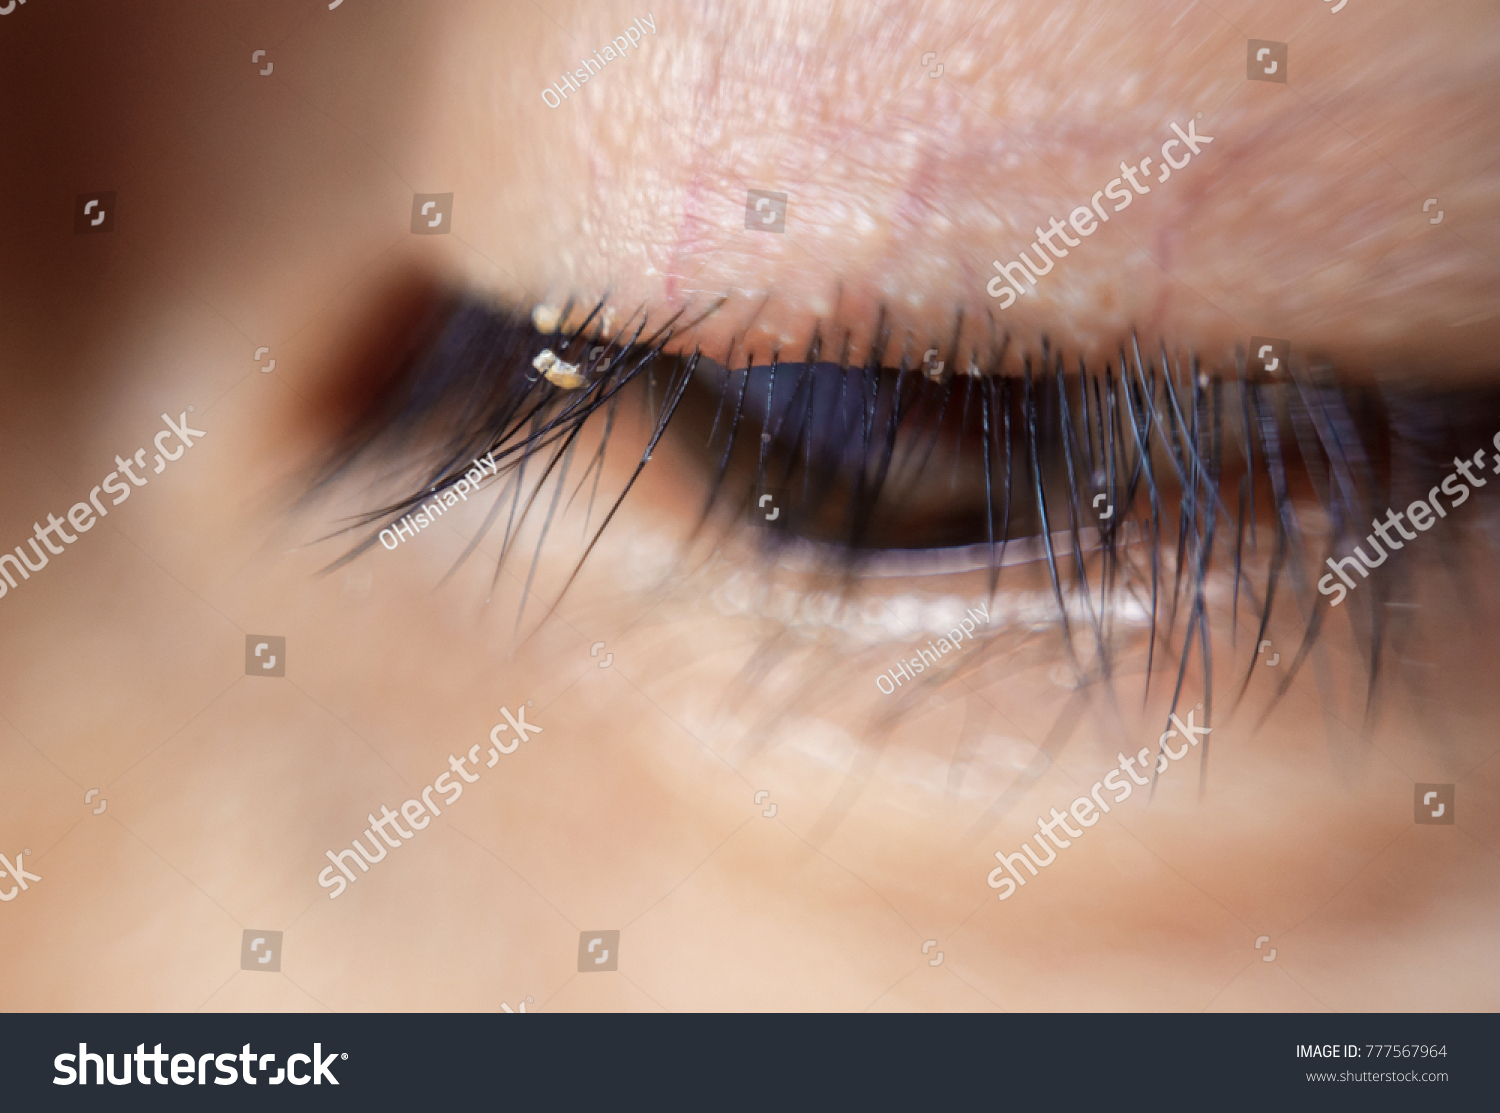 Close Severe Conjunctivitis Eyelash Mites Stock Photo Edit Now